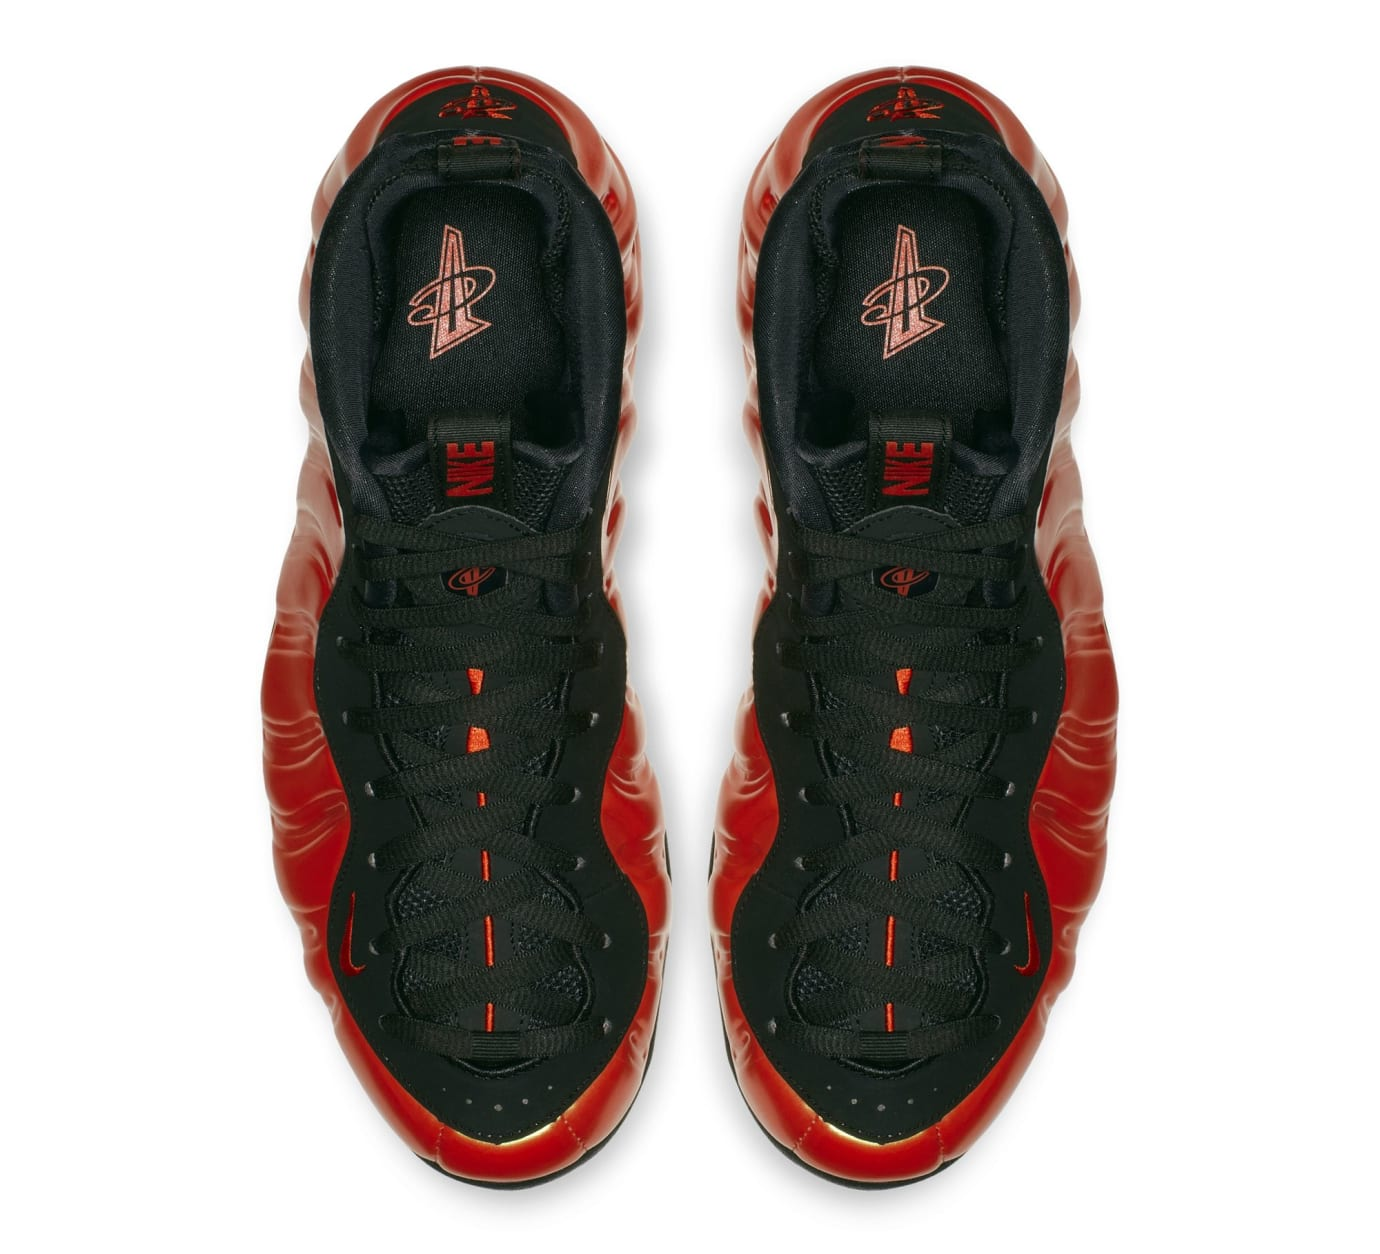 8f301920f81 Nike Air Foamposite One Habanero Red Black Release Date 314996-604 ...